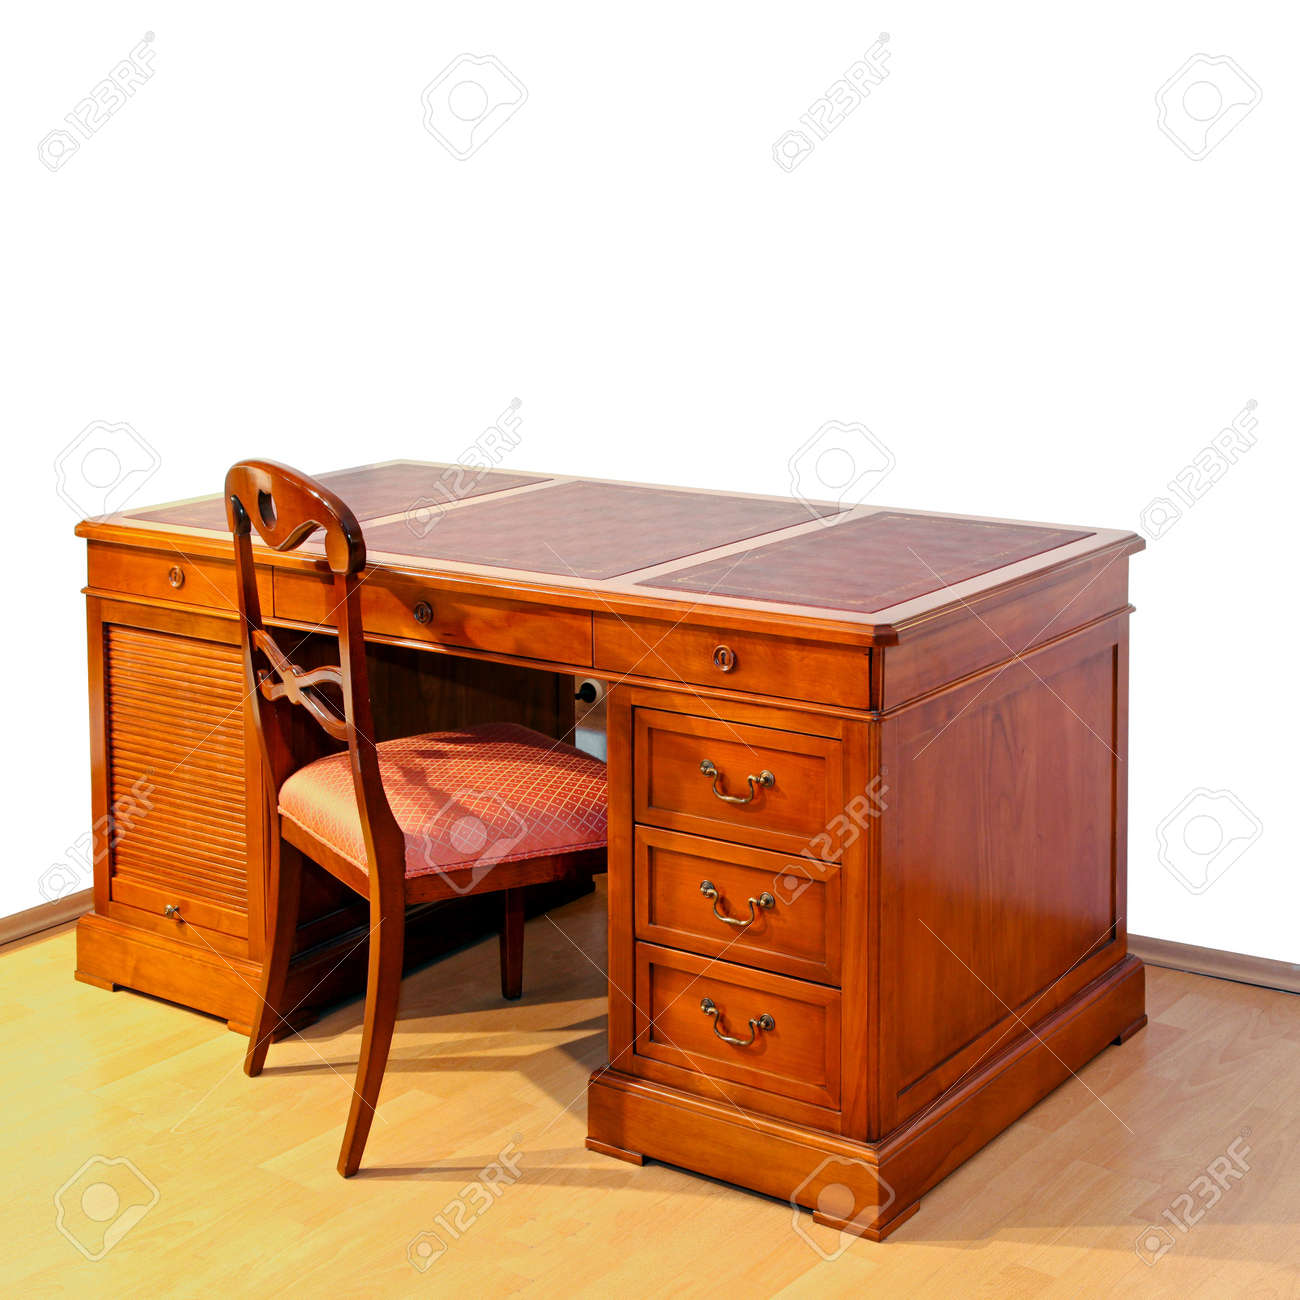 Stock Photo - Very old wooden work desk with chair - Very Old Wooden Work Desk With Chair Stock Photo, Picture And